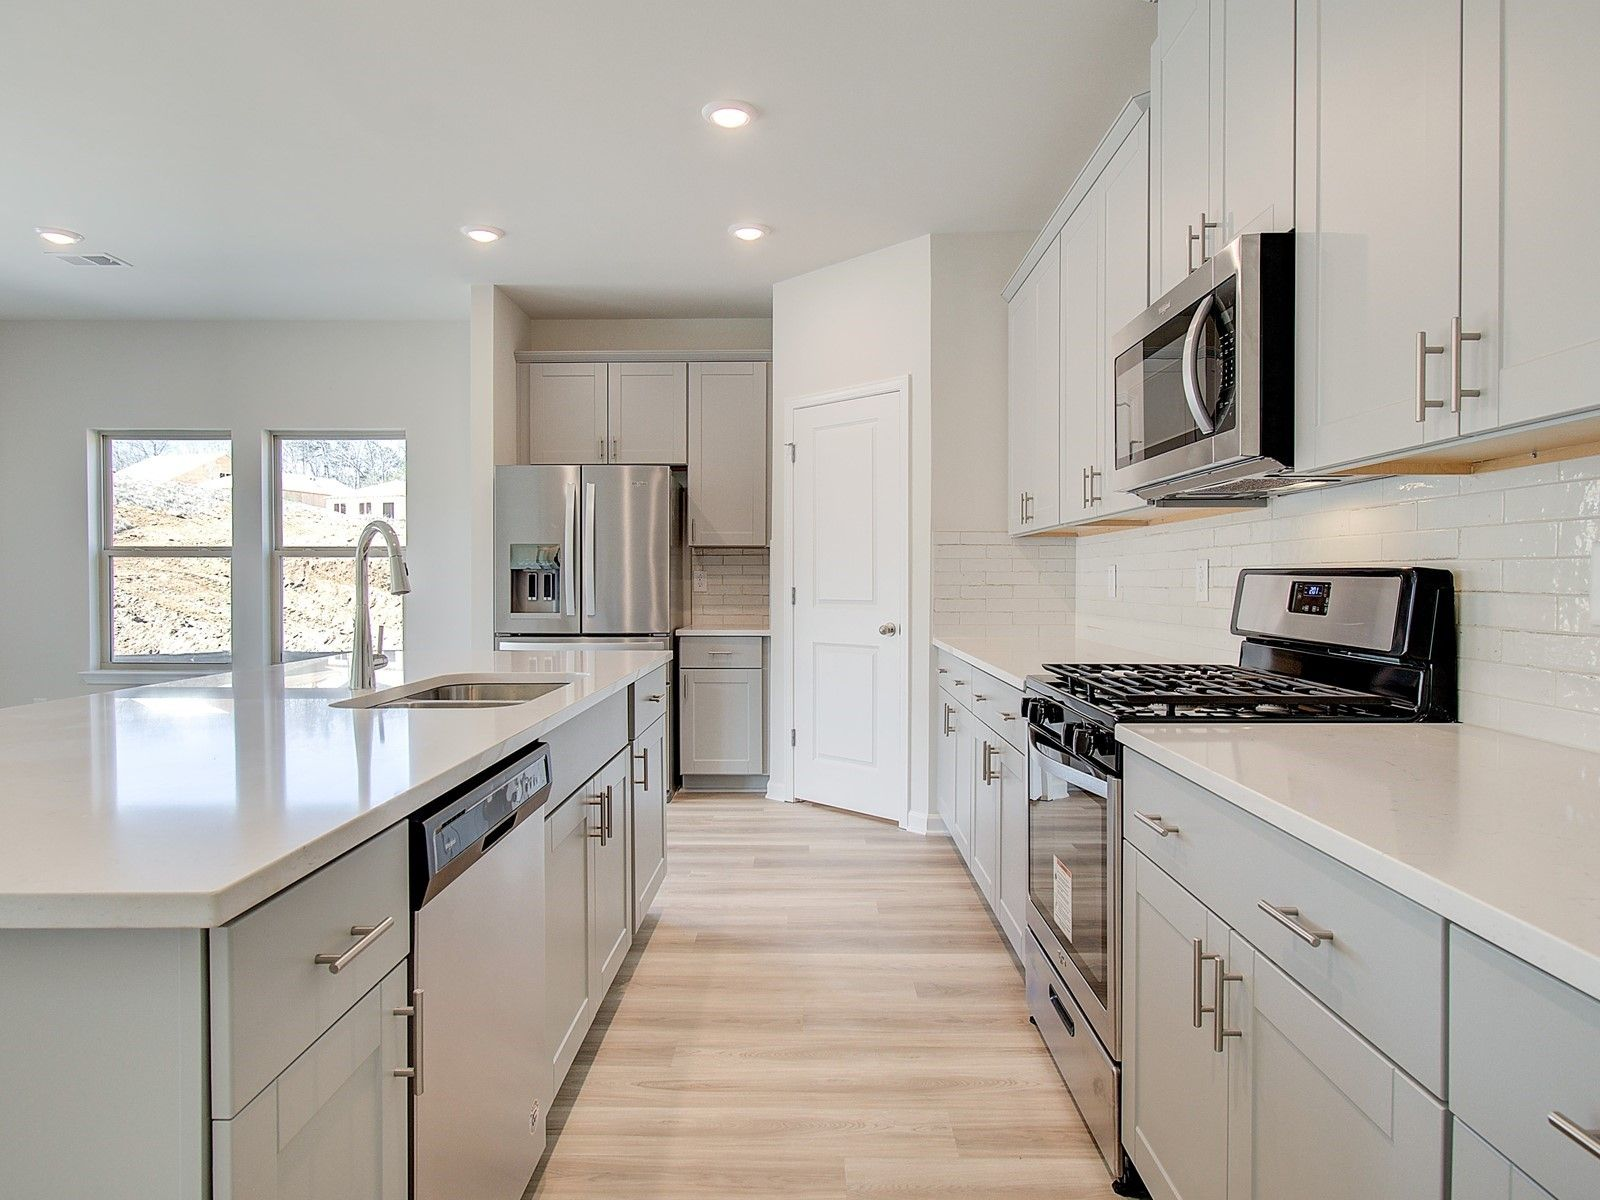 Kitchen featured in the Gibson Basement By Meritage Homes in Atlanta, GA